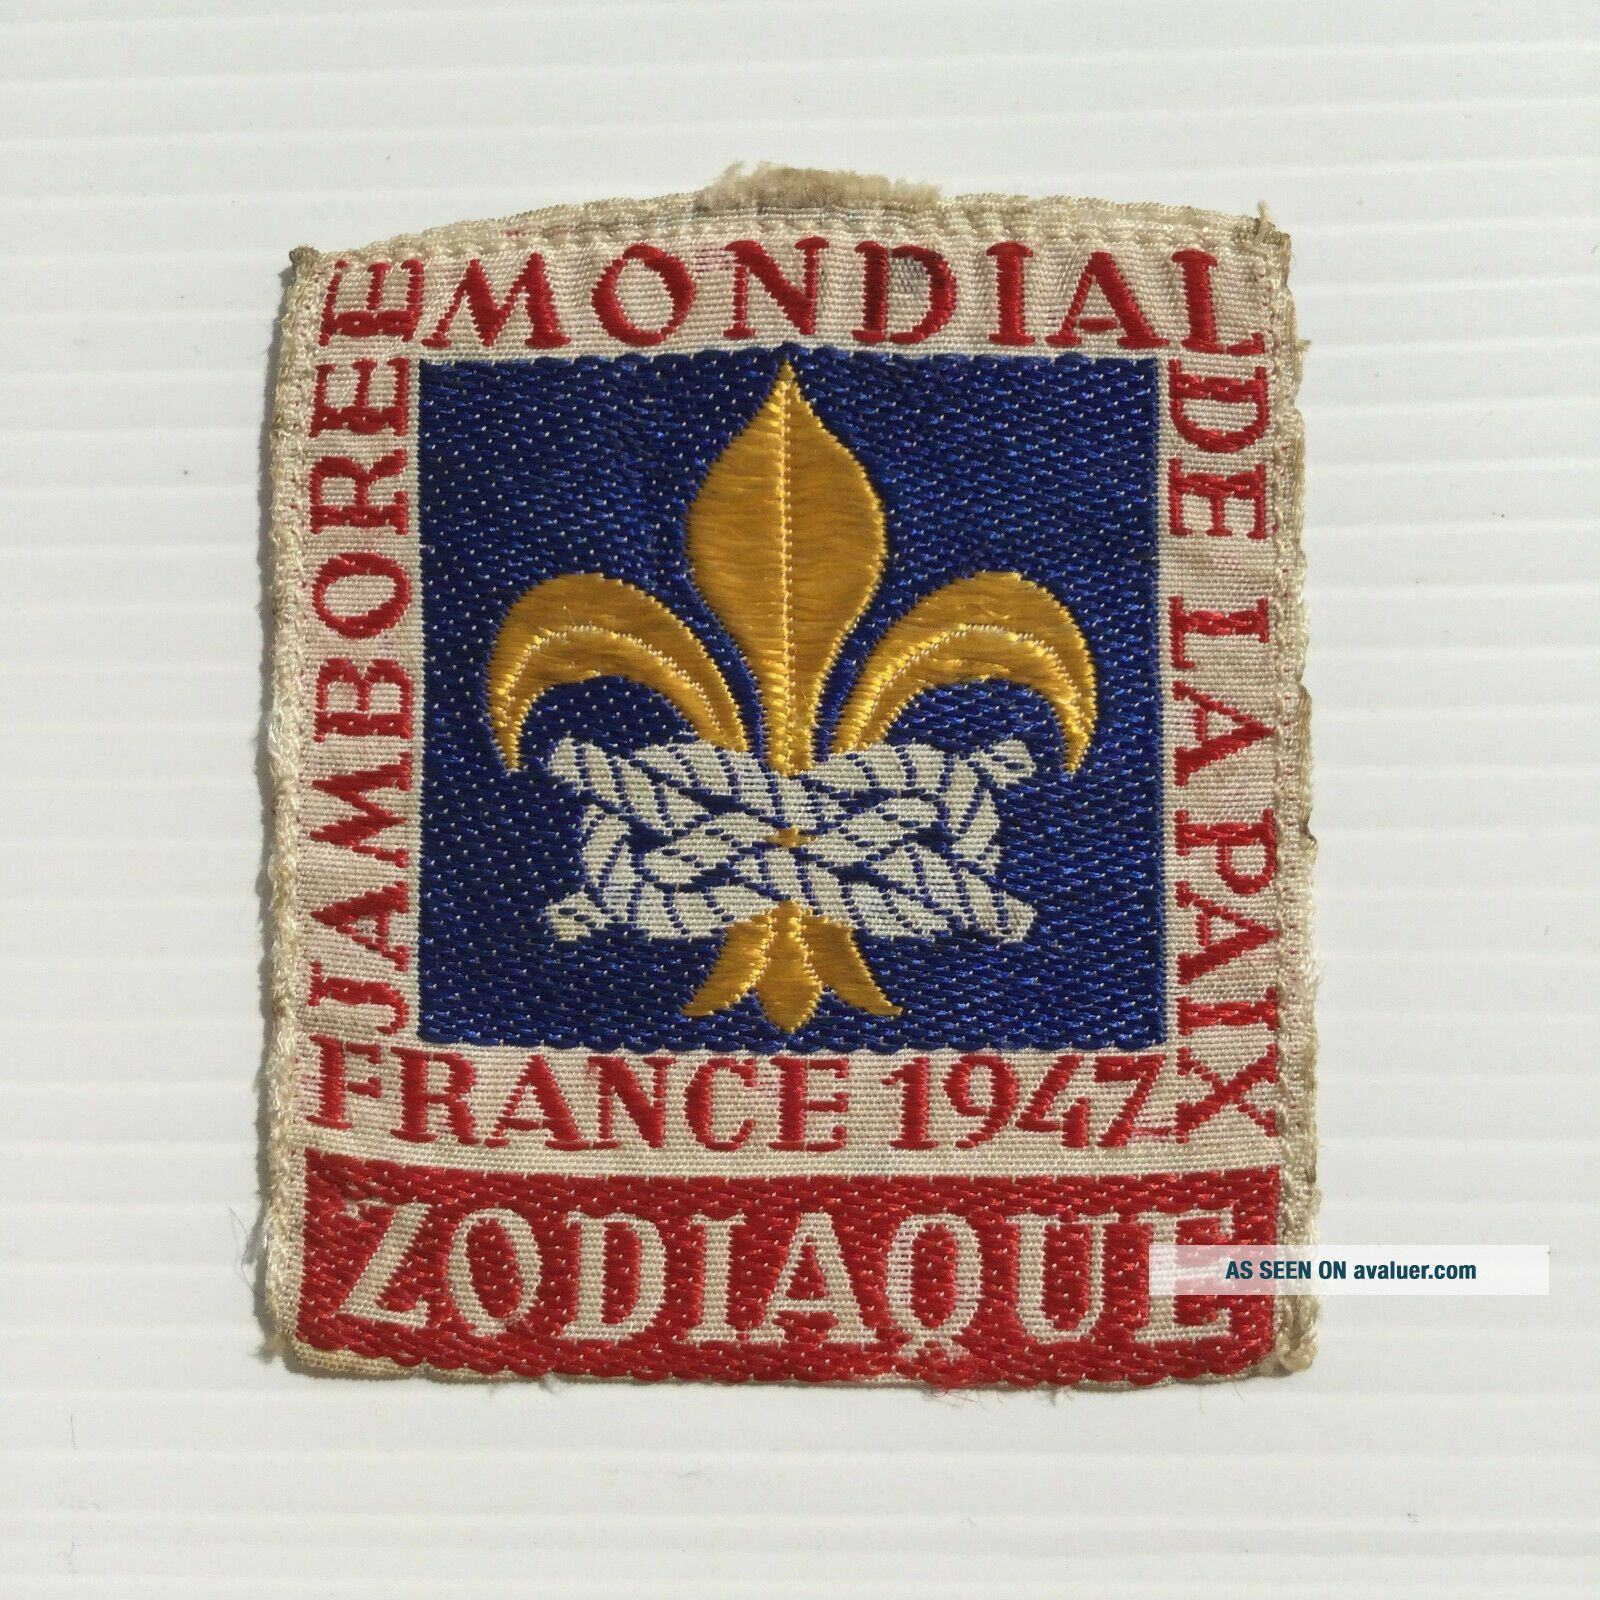 Extremely difficult 1947 World Jamboree RED ZODIAQUE leader badge